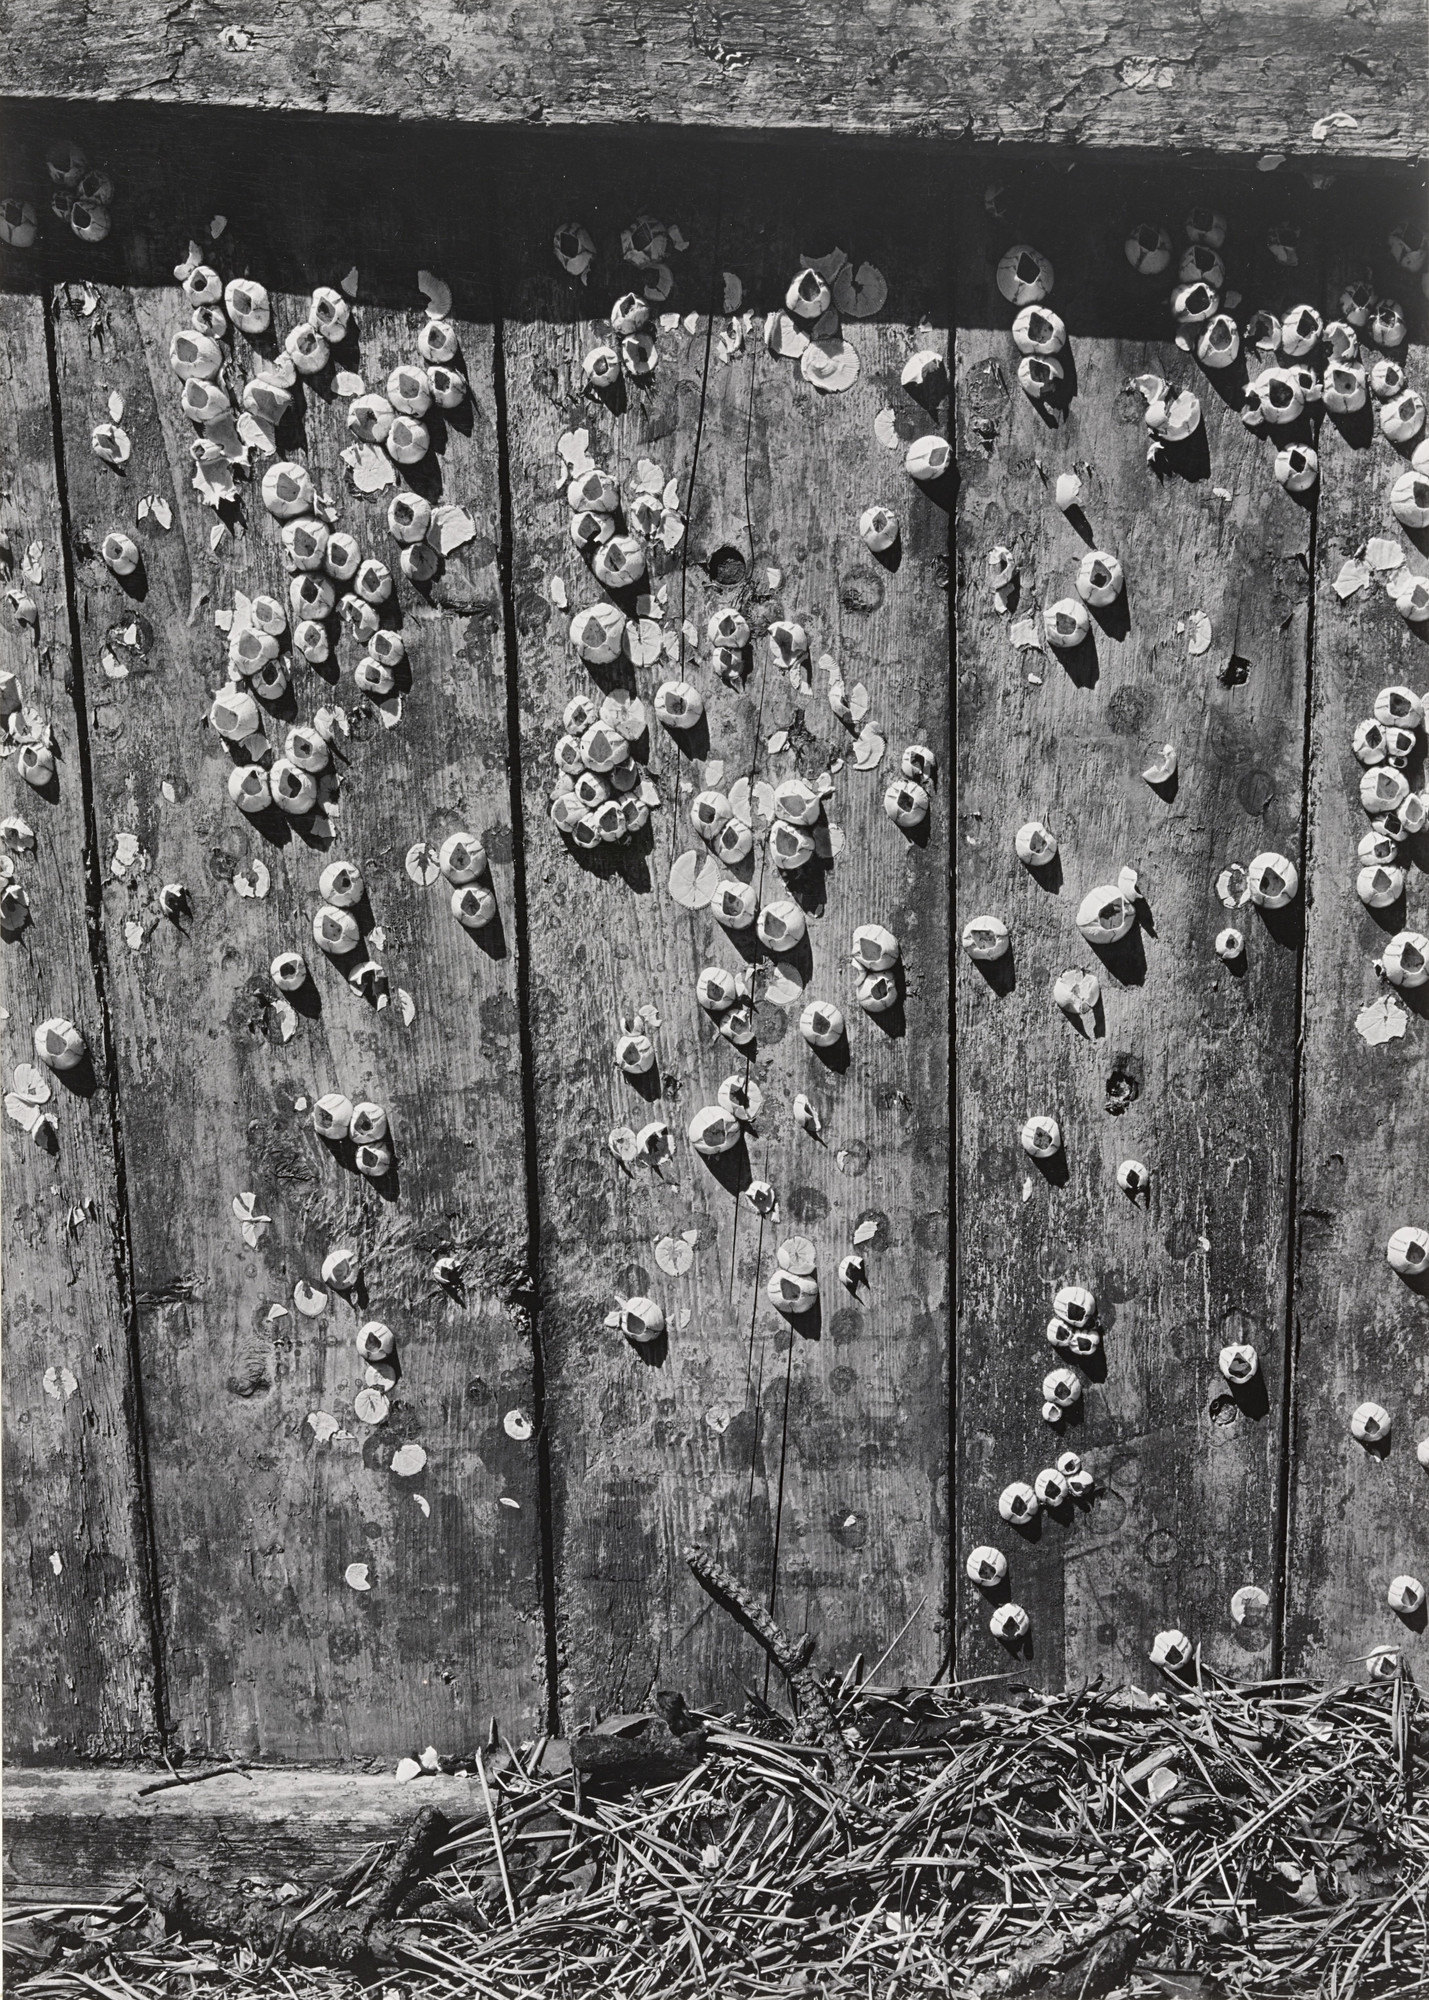 Ansel Adams. Barnacles, Cape Cod. 1939